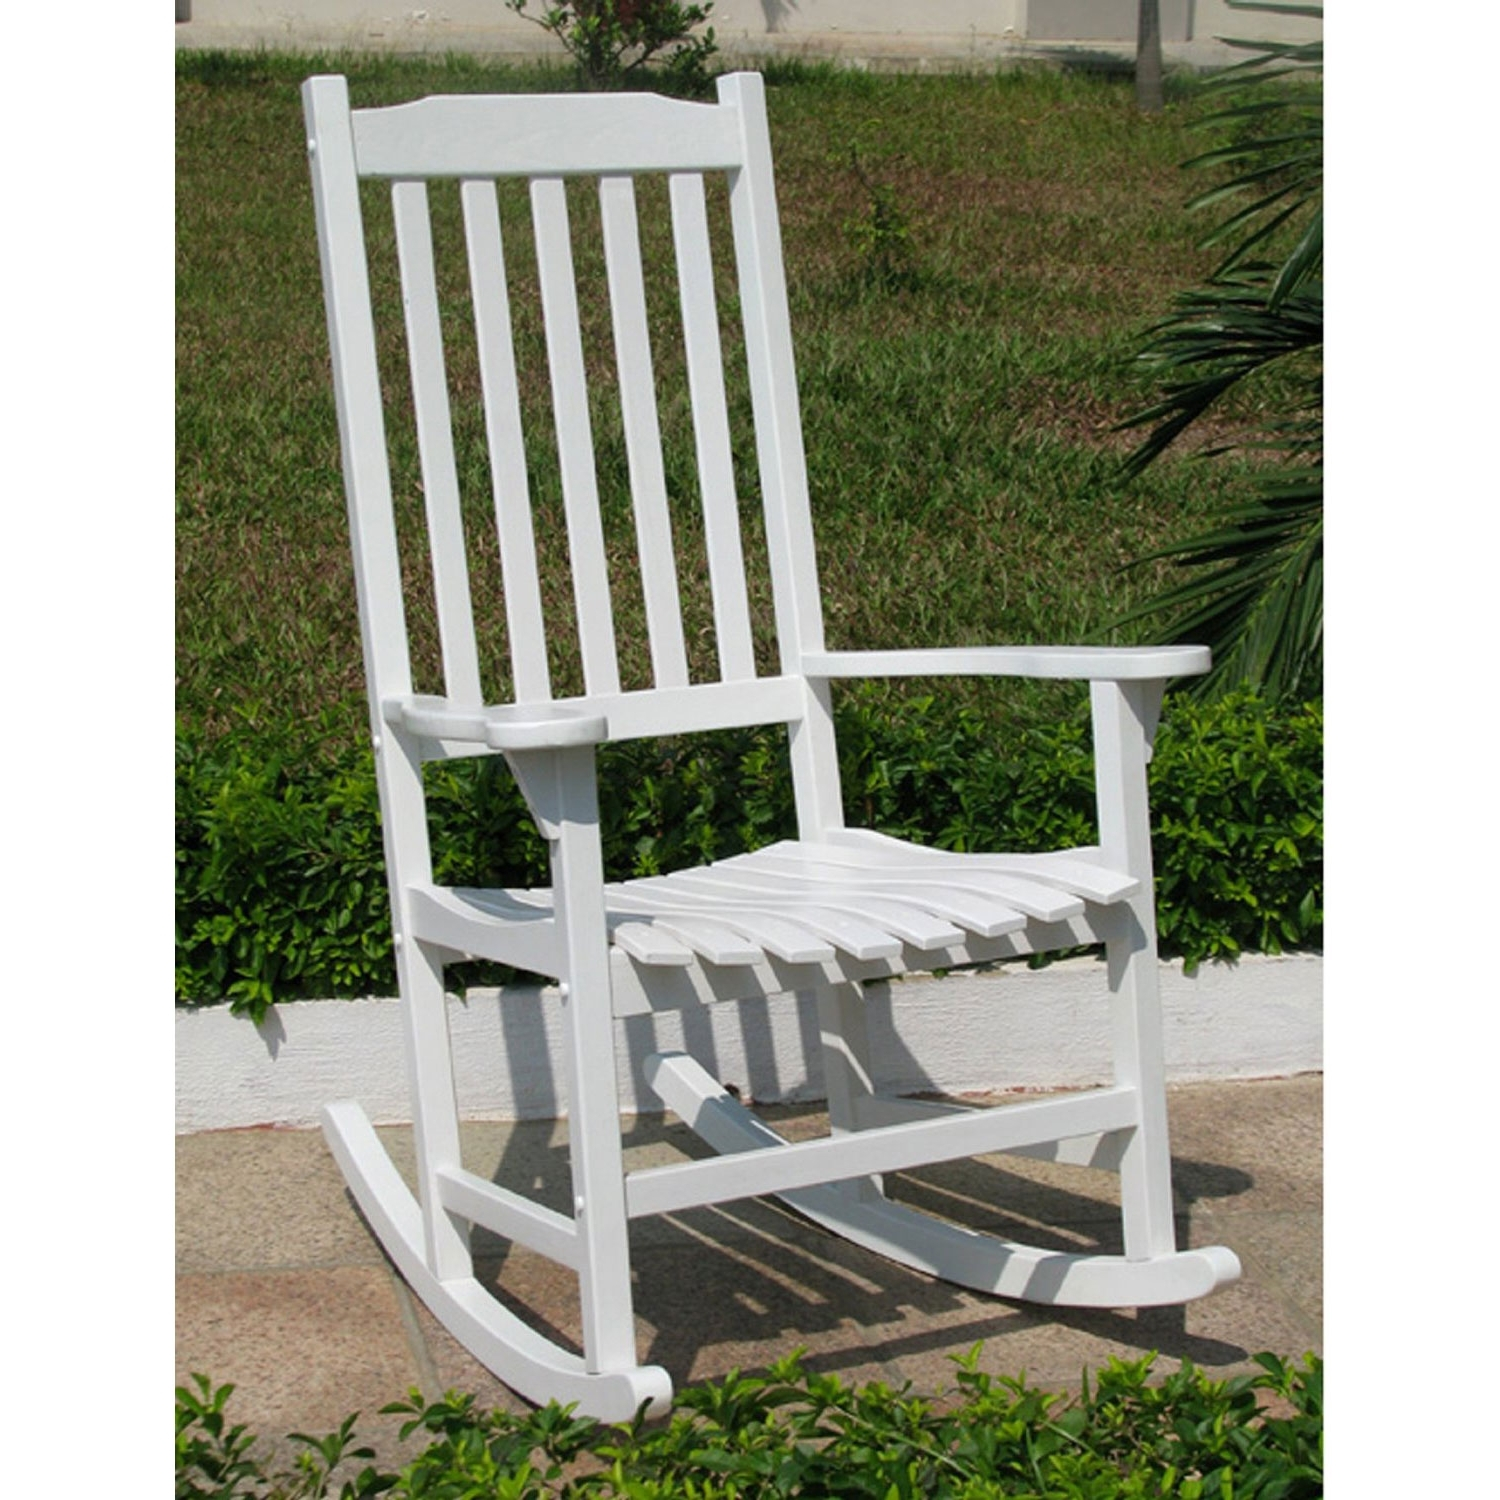 Best And Newest Lovely Cheap Patio Chairs Semco Recycled Plastic Rocking Chair With Inexpensive Patio Rocking Chairs (View 10 of 15)